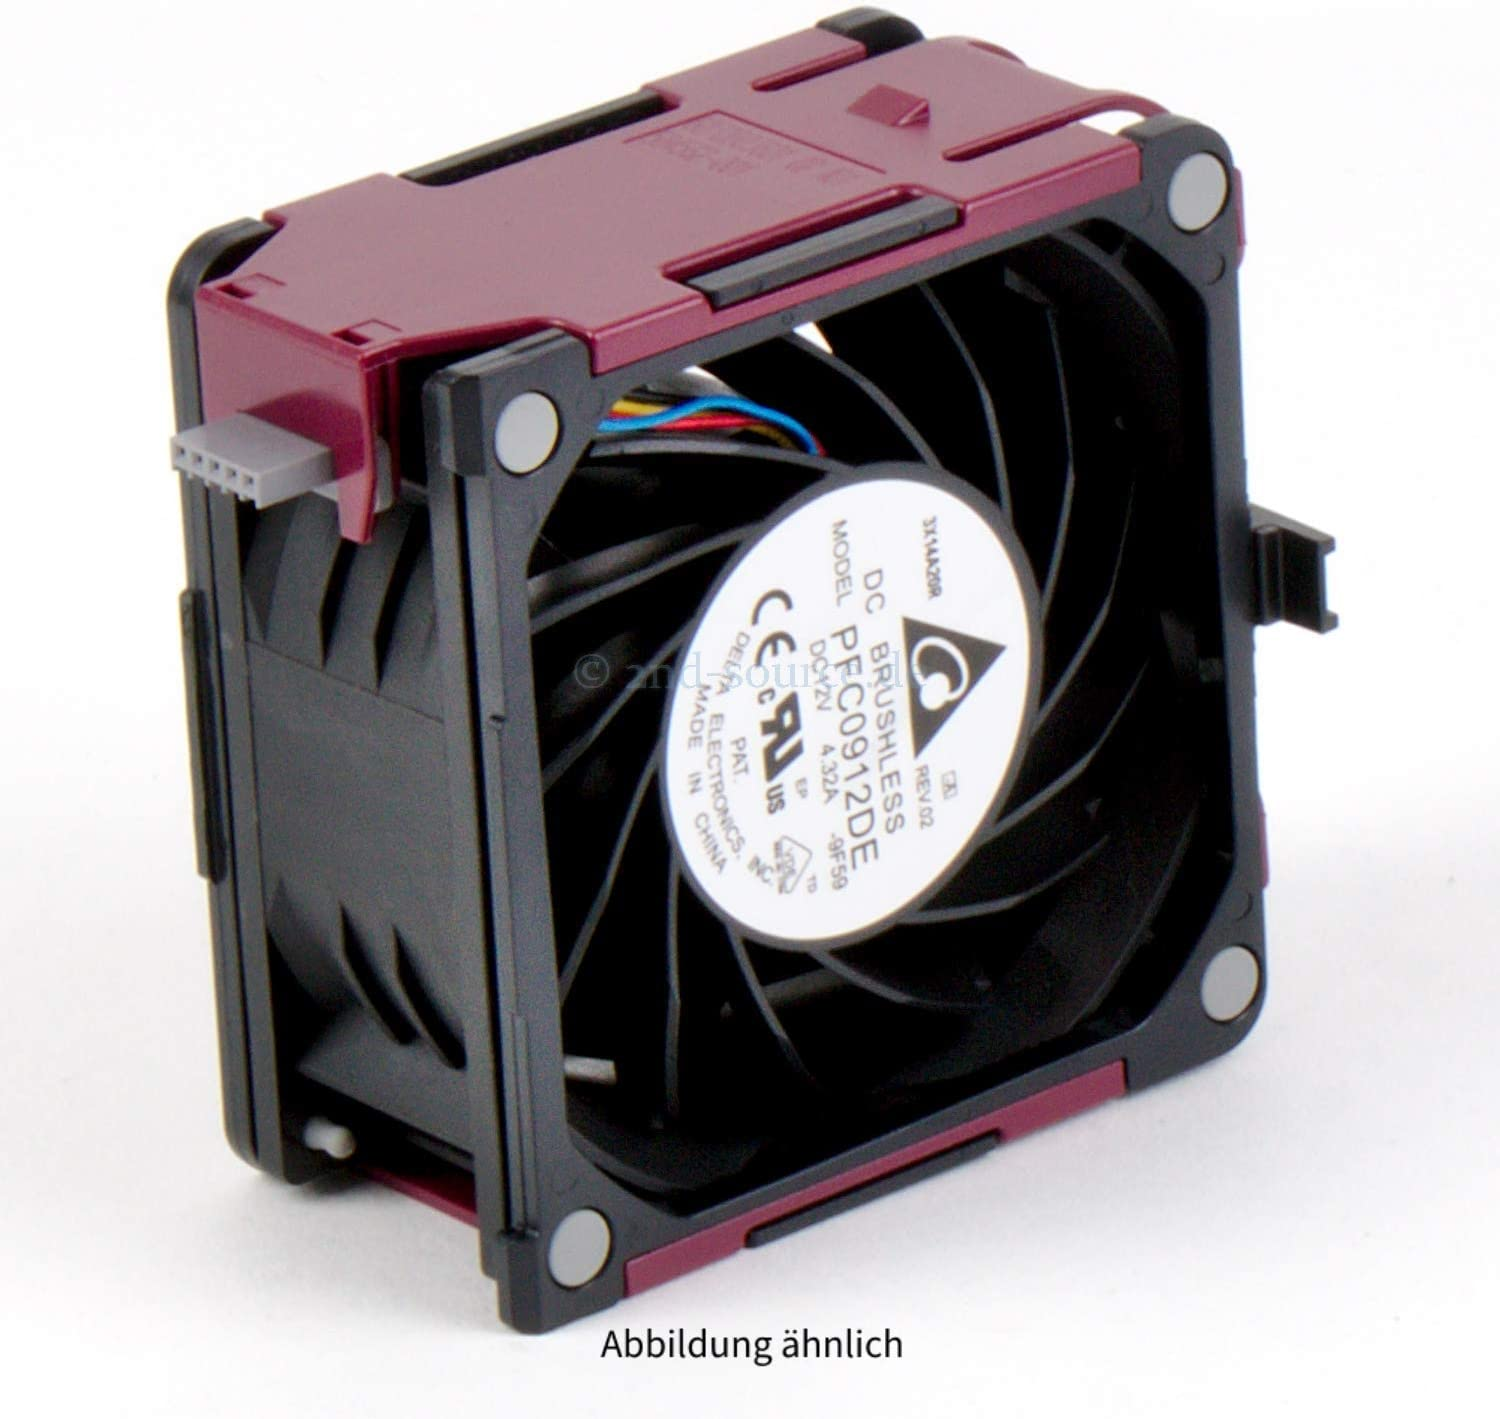 92MM HP HOT-PLUG FAN ASSEMBLY Renewed